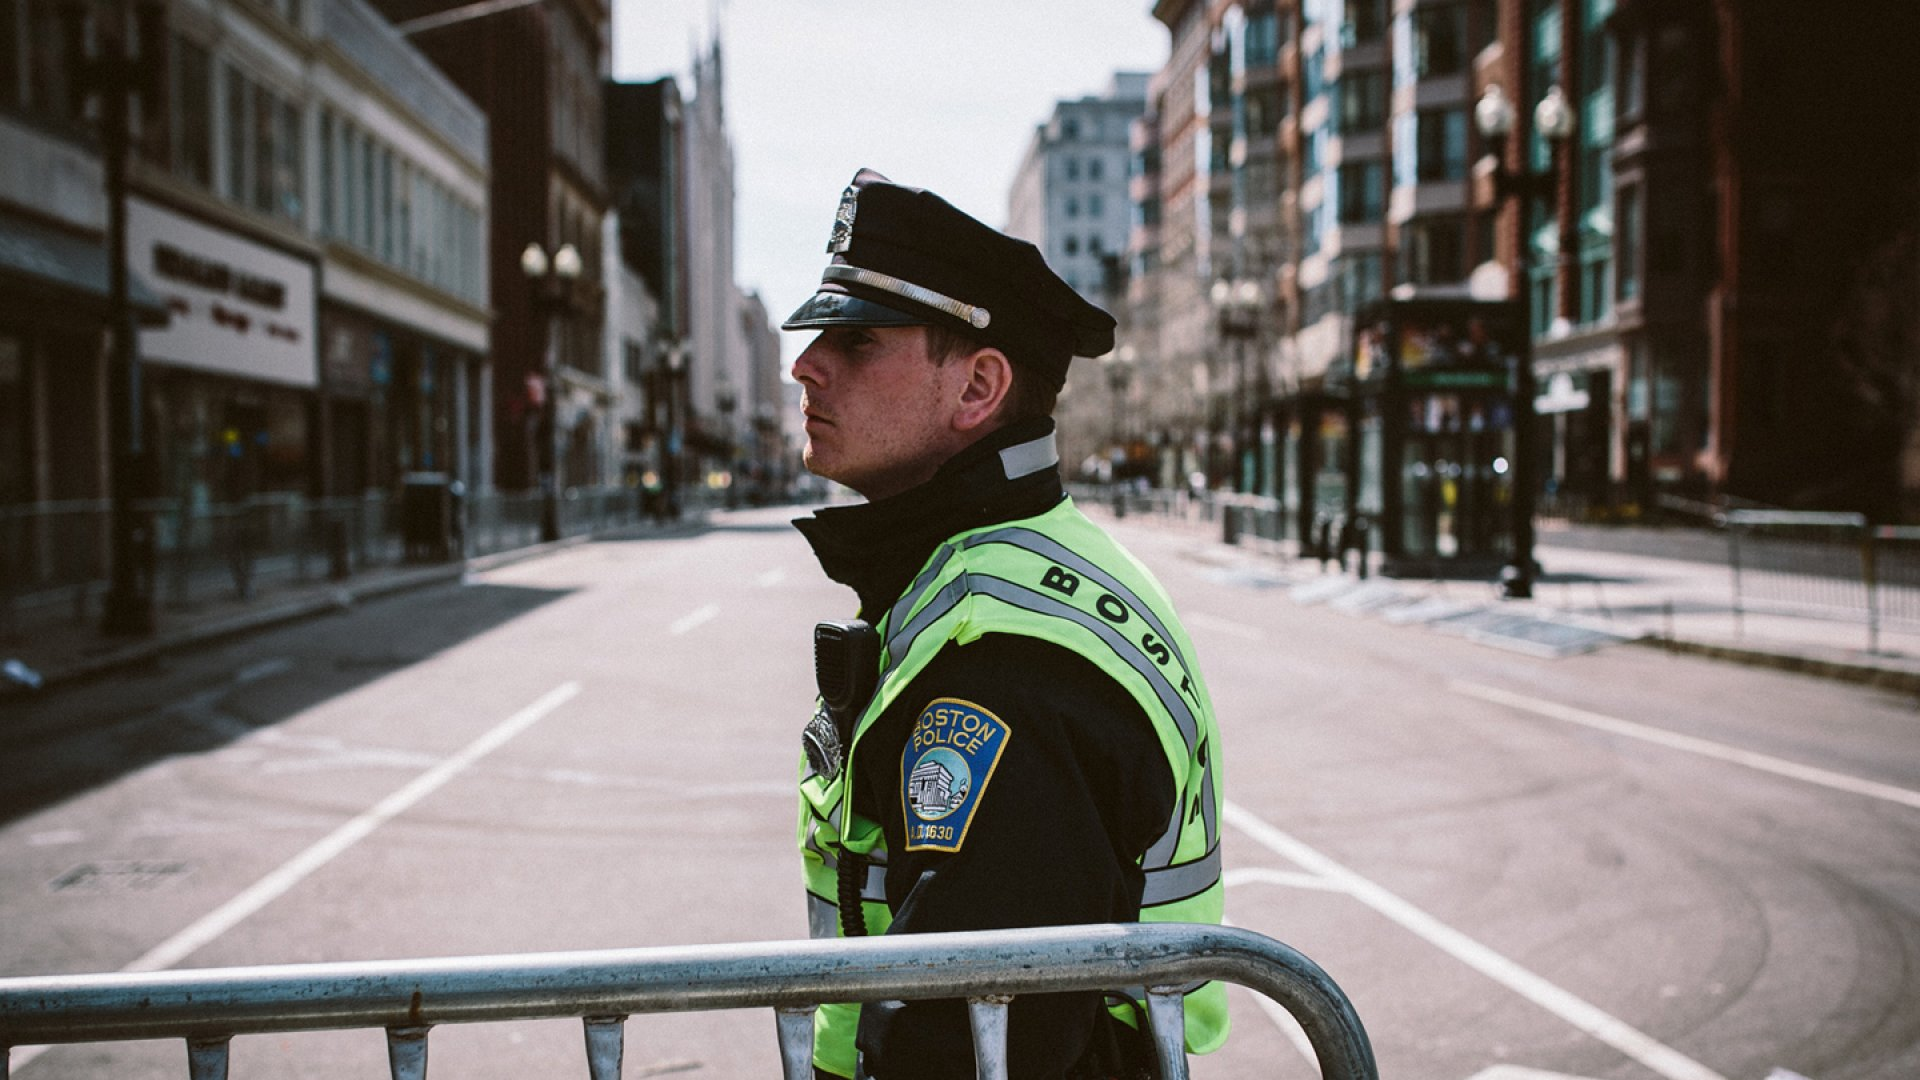 Selling Safety: Security Companies React to a Post-Boston Landscape